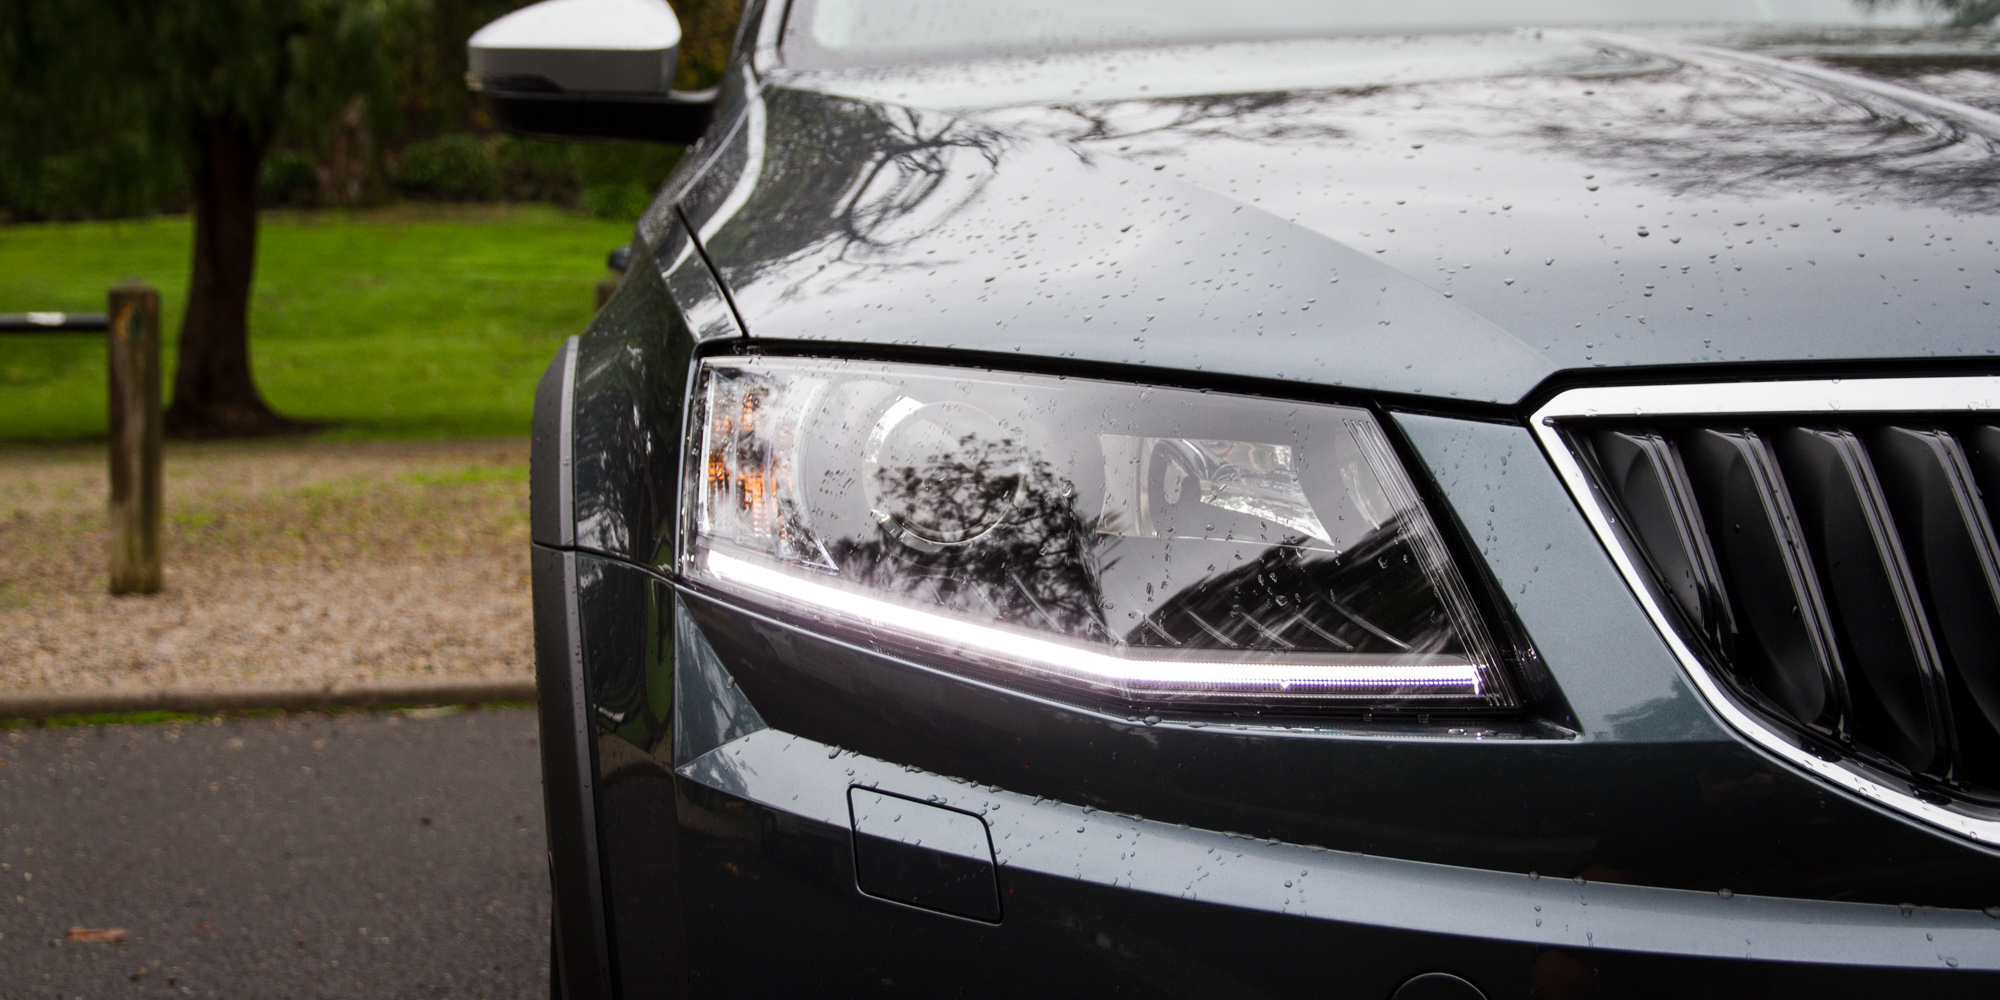 2016 Skoda Octavia Scout Exterior Headlamp (Photo 4 of 23)